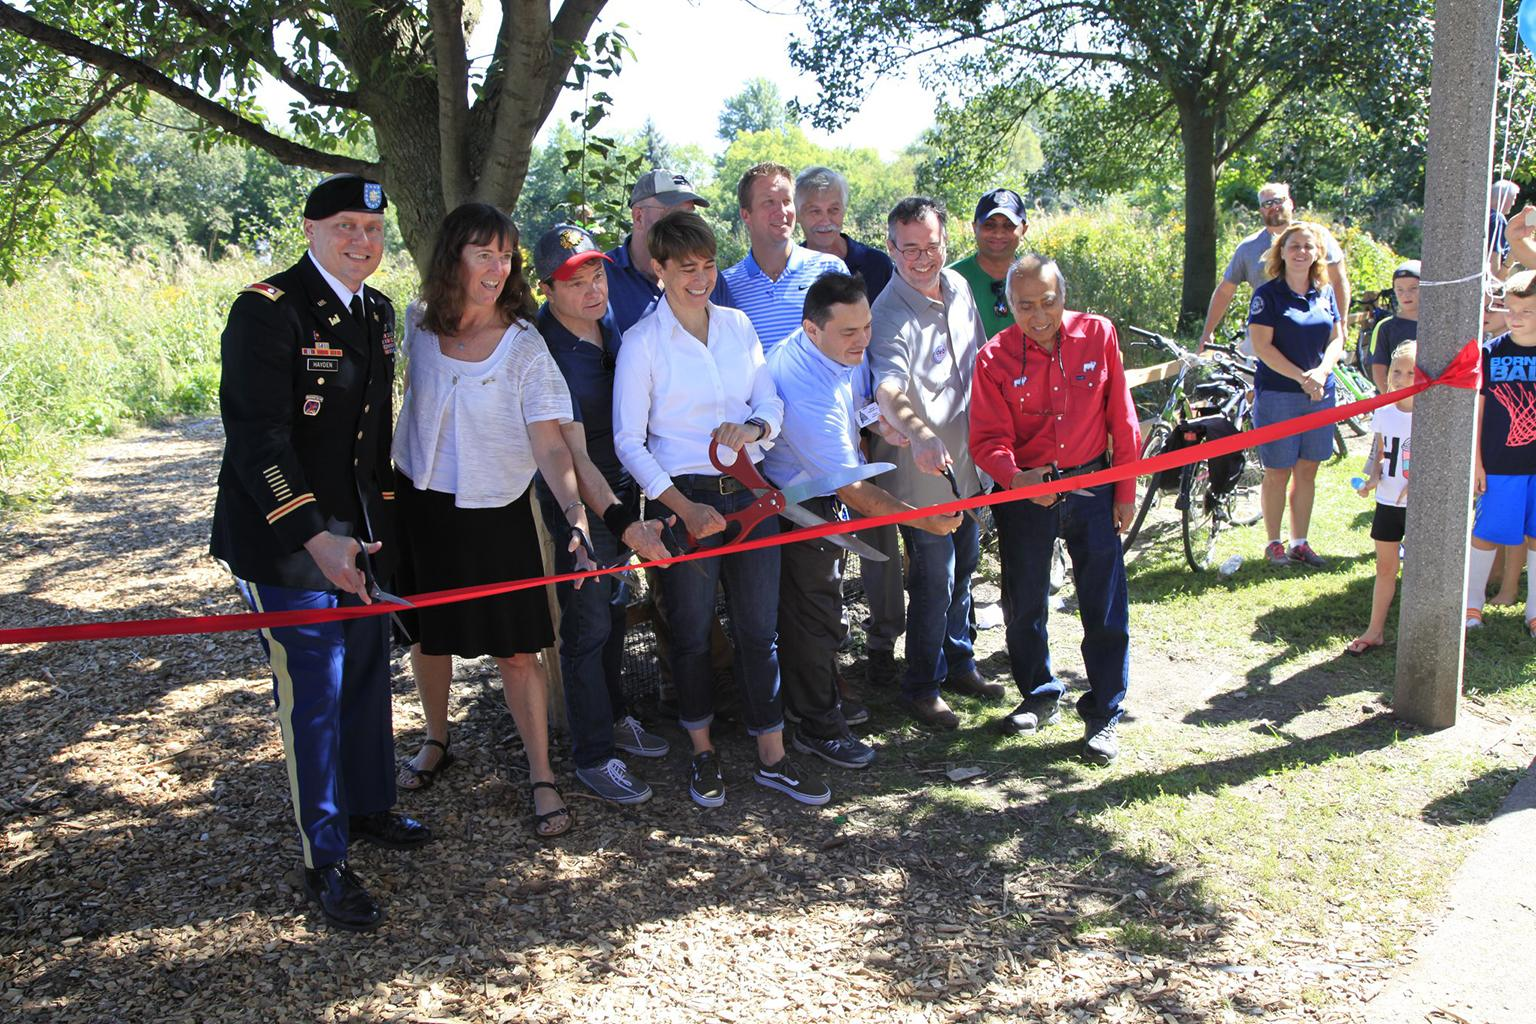 Federal and local officials celebrate the opening of the restored riverfront at Horner Park on Sept. 15, 2018. (Courtesy U.S. Army Corps of Engineers)